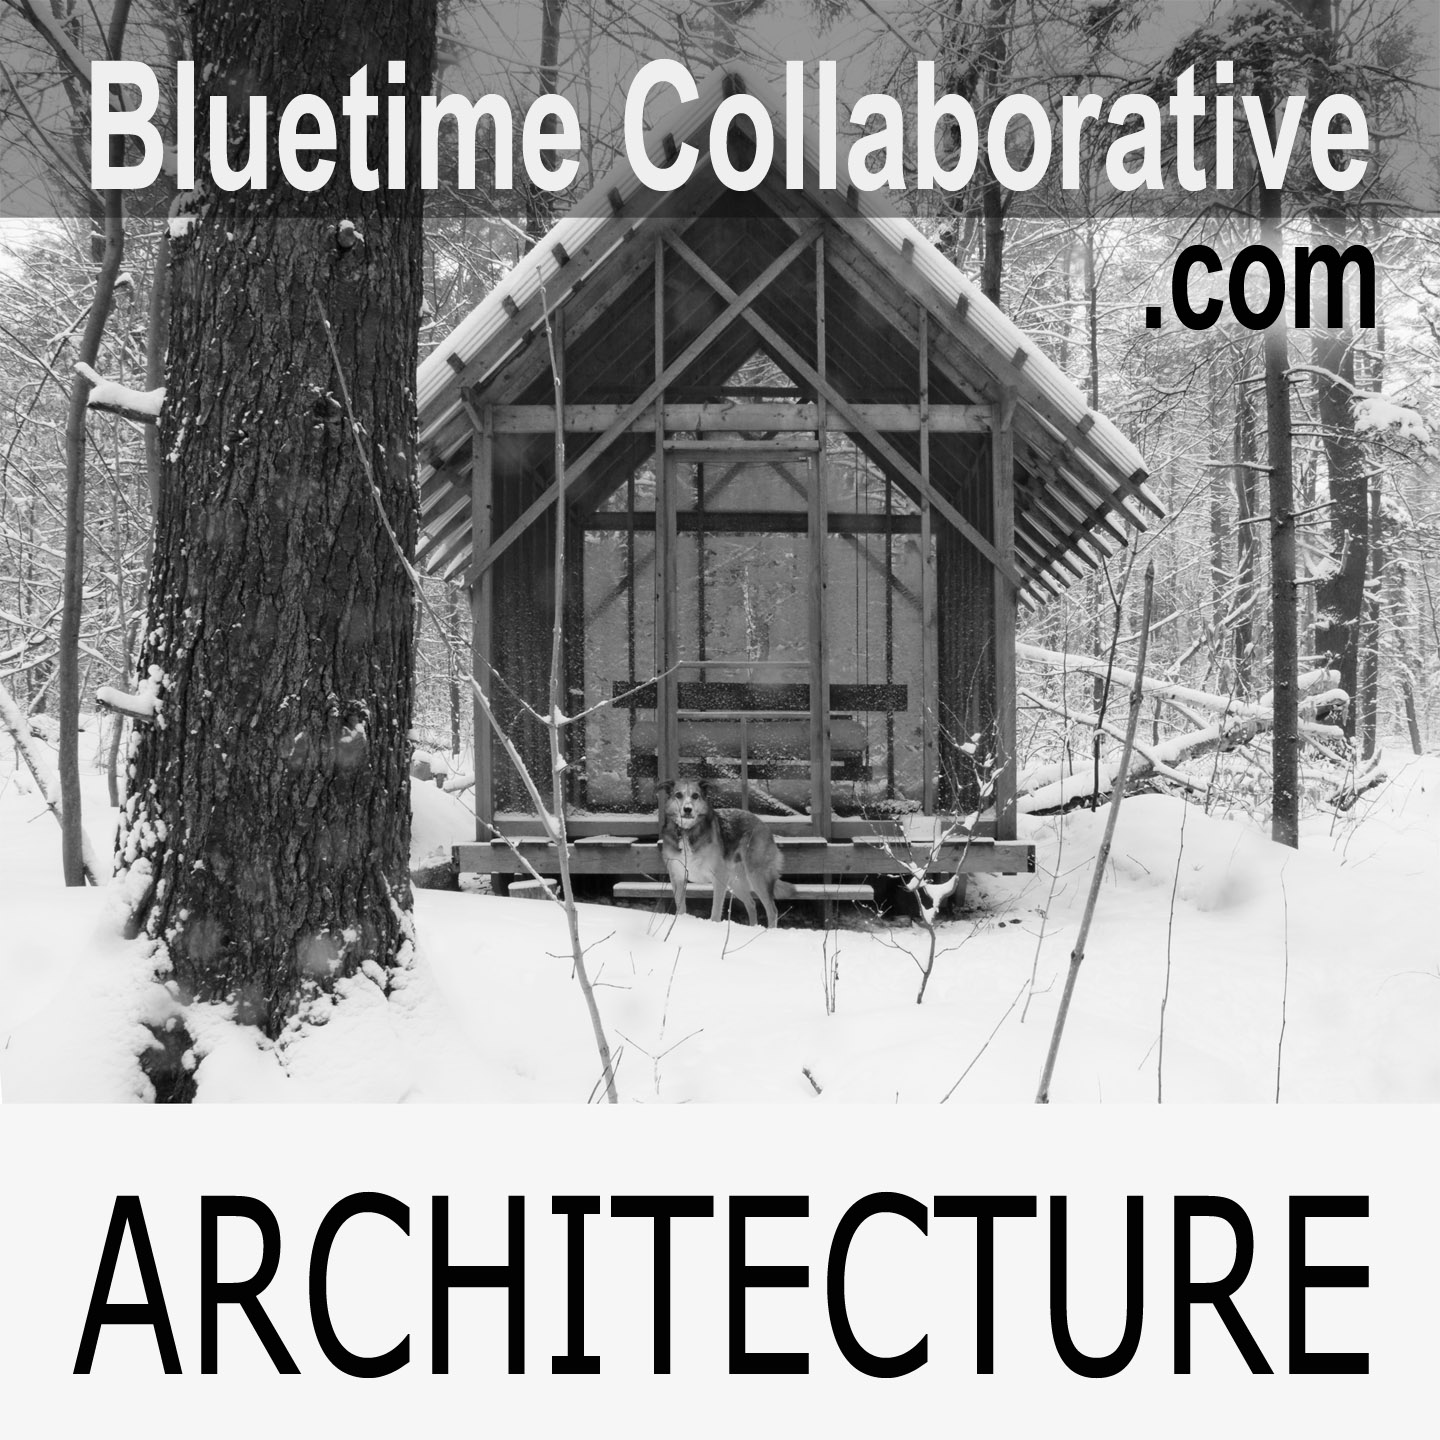 Bluetime-commons-ad copy.jpg